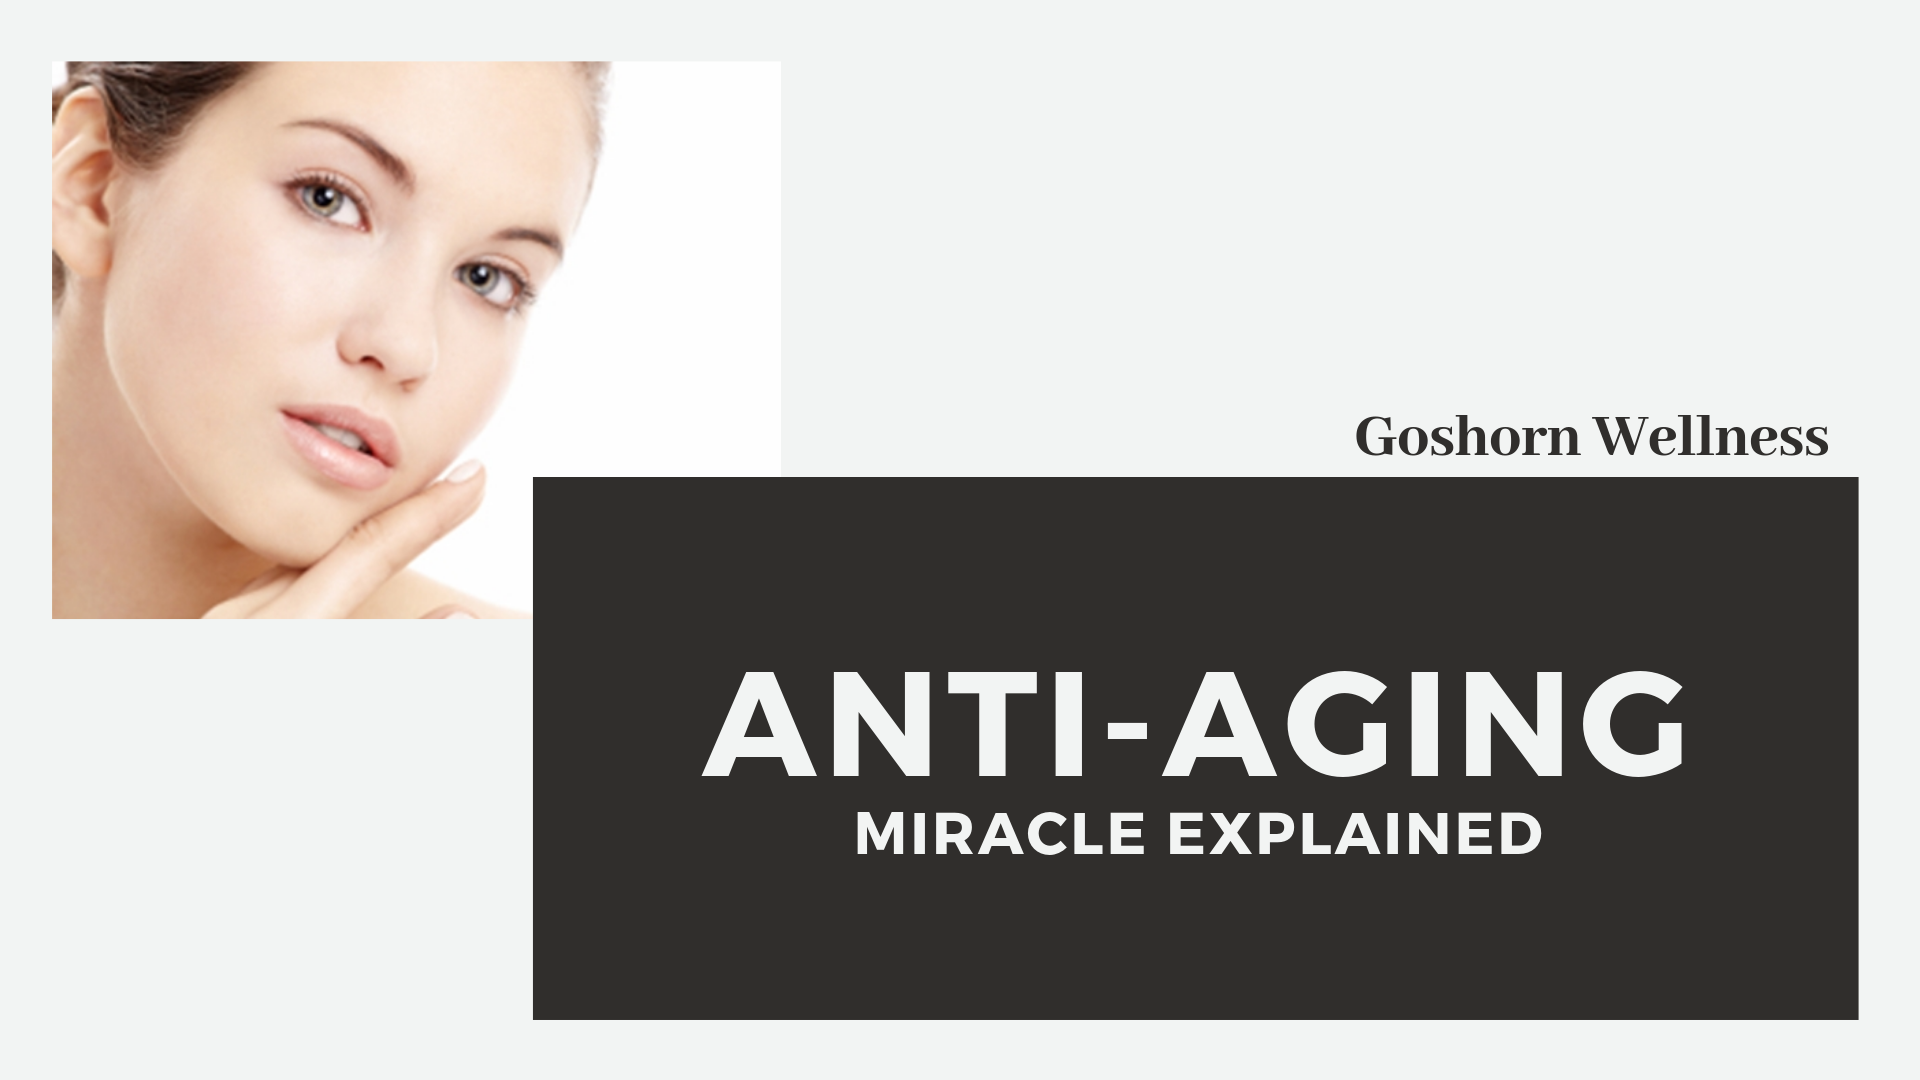 Anti-aging miracle explained